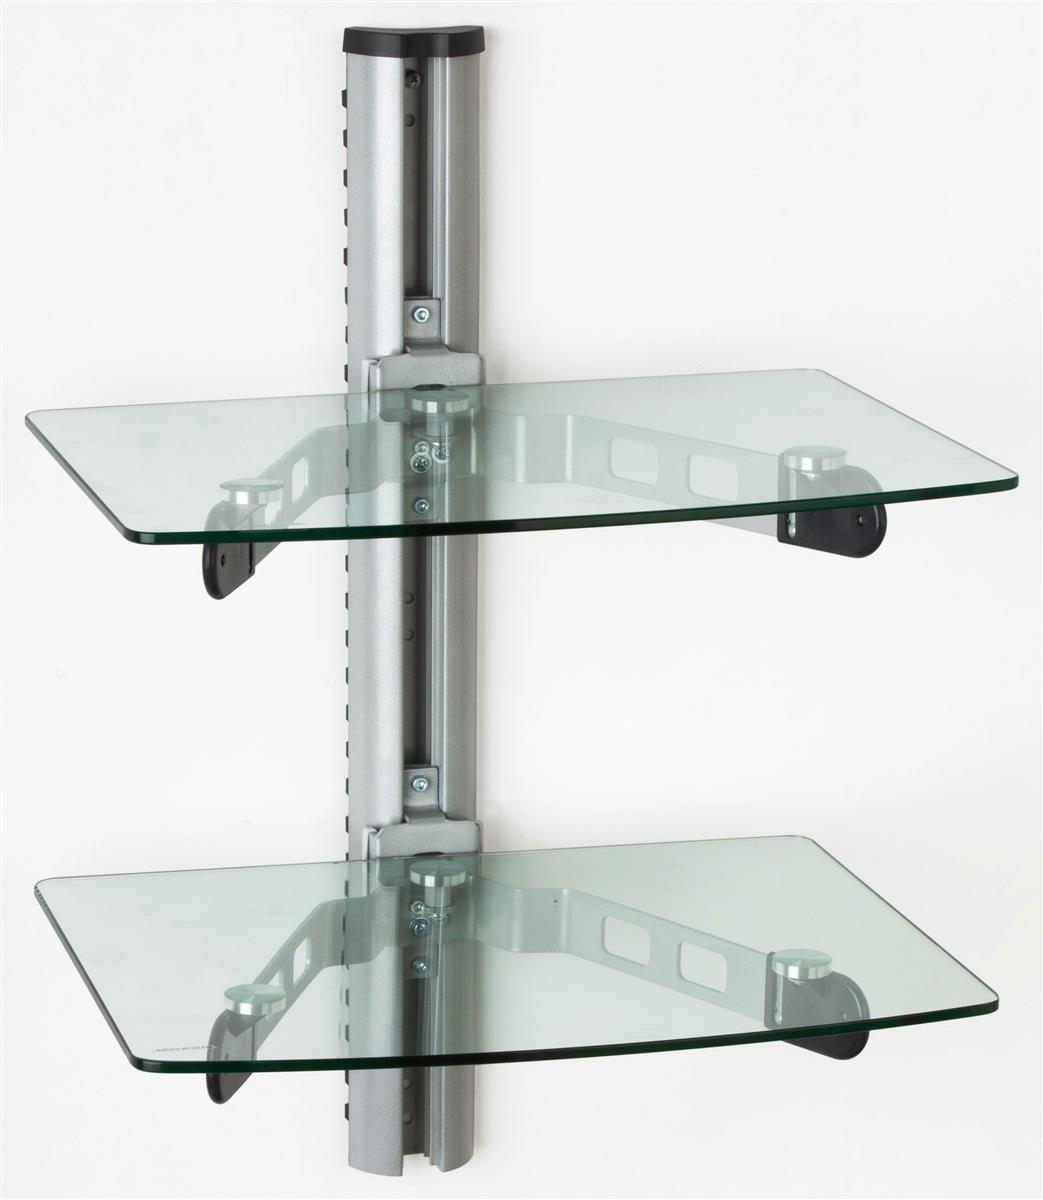 Wall Mounted Glass Shelves Av Component Stand Intended For Black Glass Shelves Wall Mounted (#11 of 15)